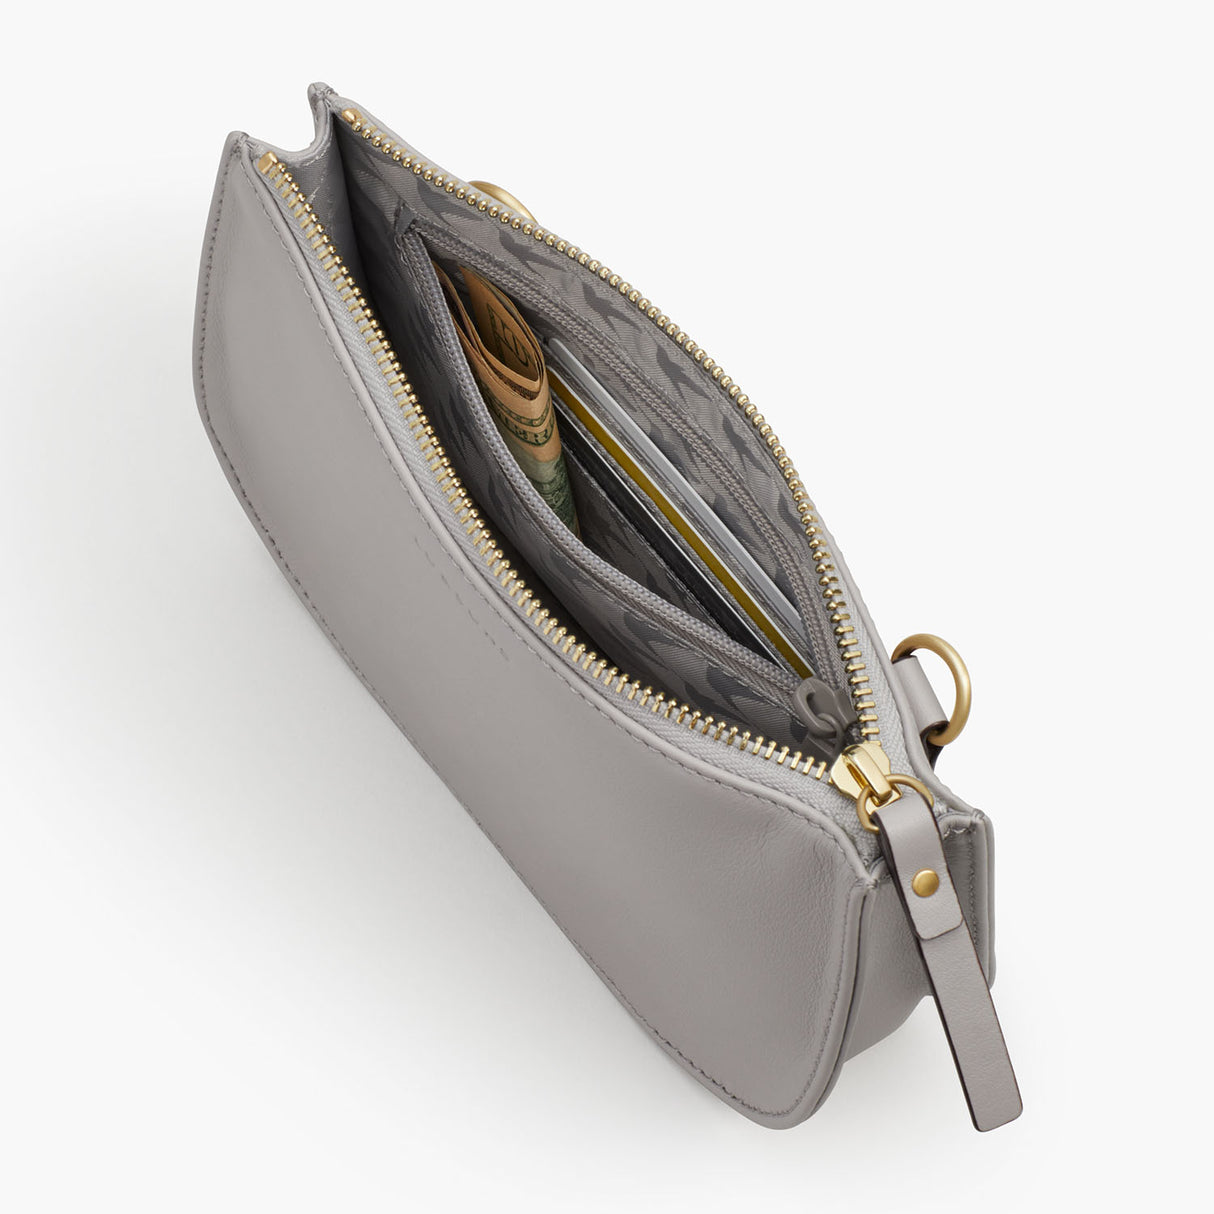 Interior Zipper - The Waverley 2 - Nappa Leather - Light Grey / Gold / Grey - Crossbody - Lo & Sons